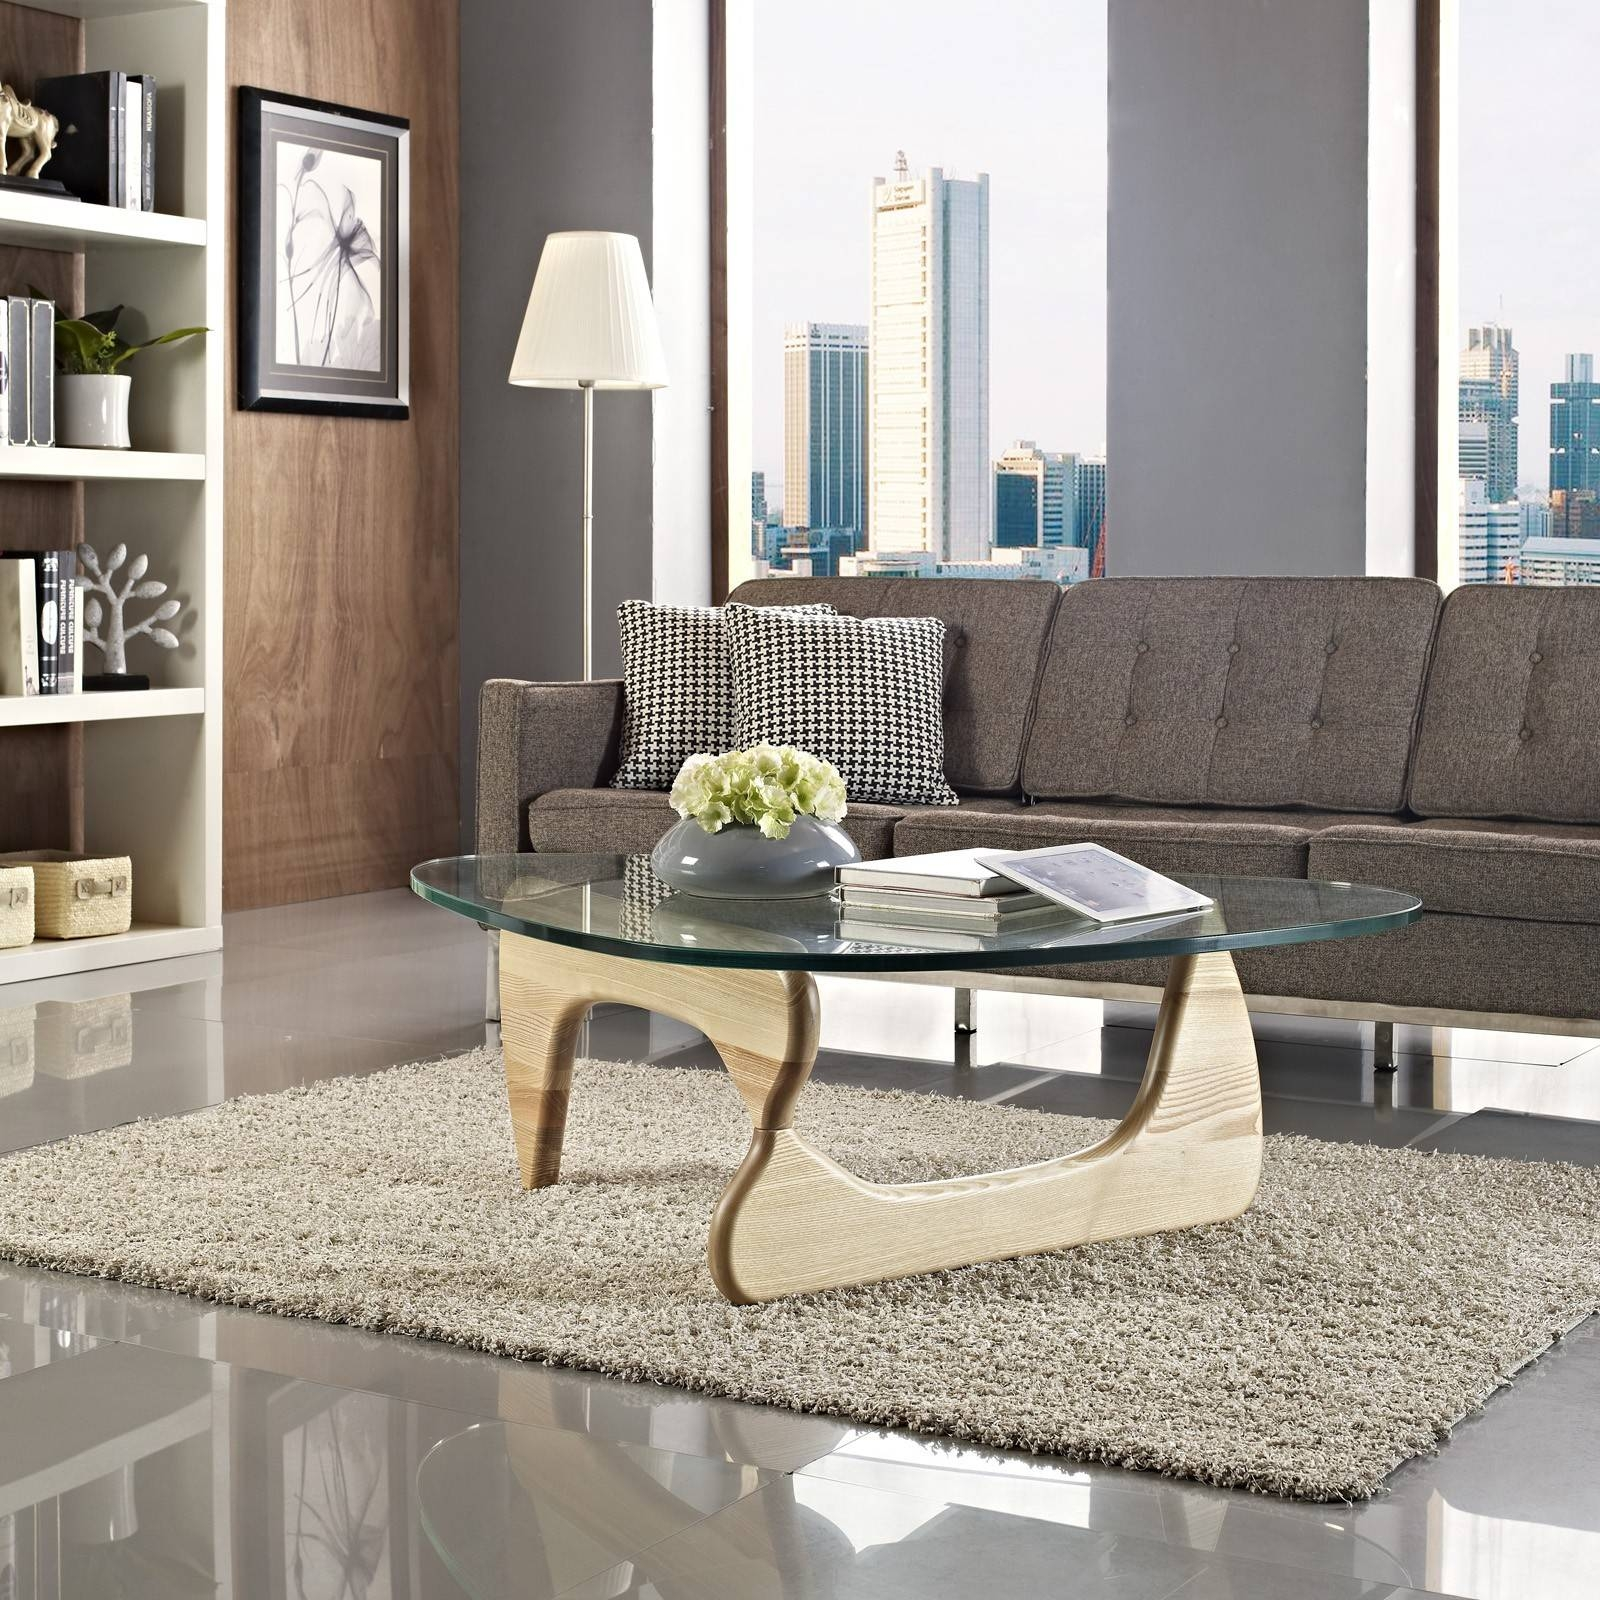 Noguchi Coffee Table: A Classic Yet Timeless! in Noguchi Coffee Tables (Image 16 of 30)